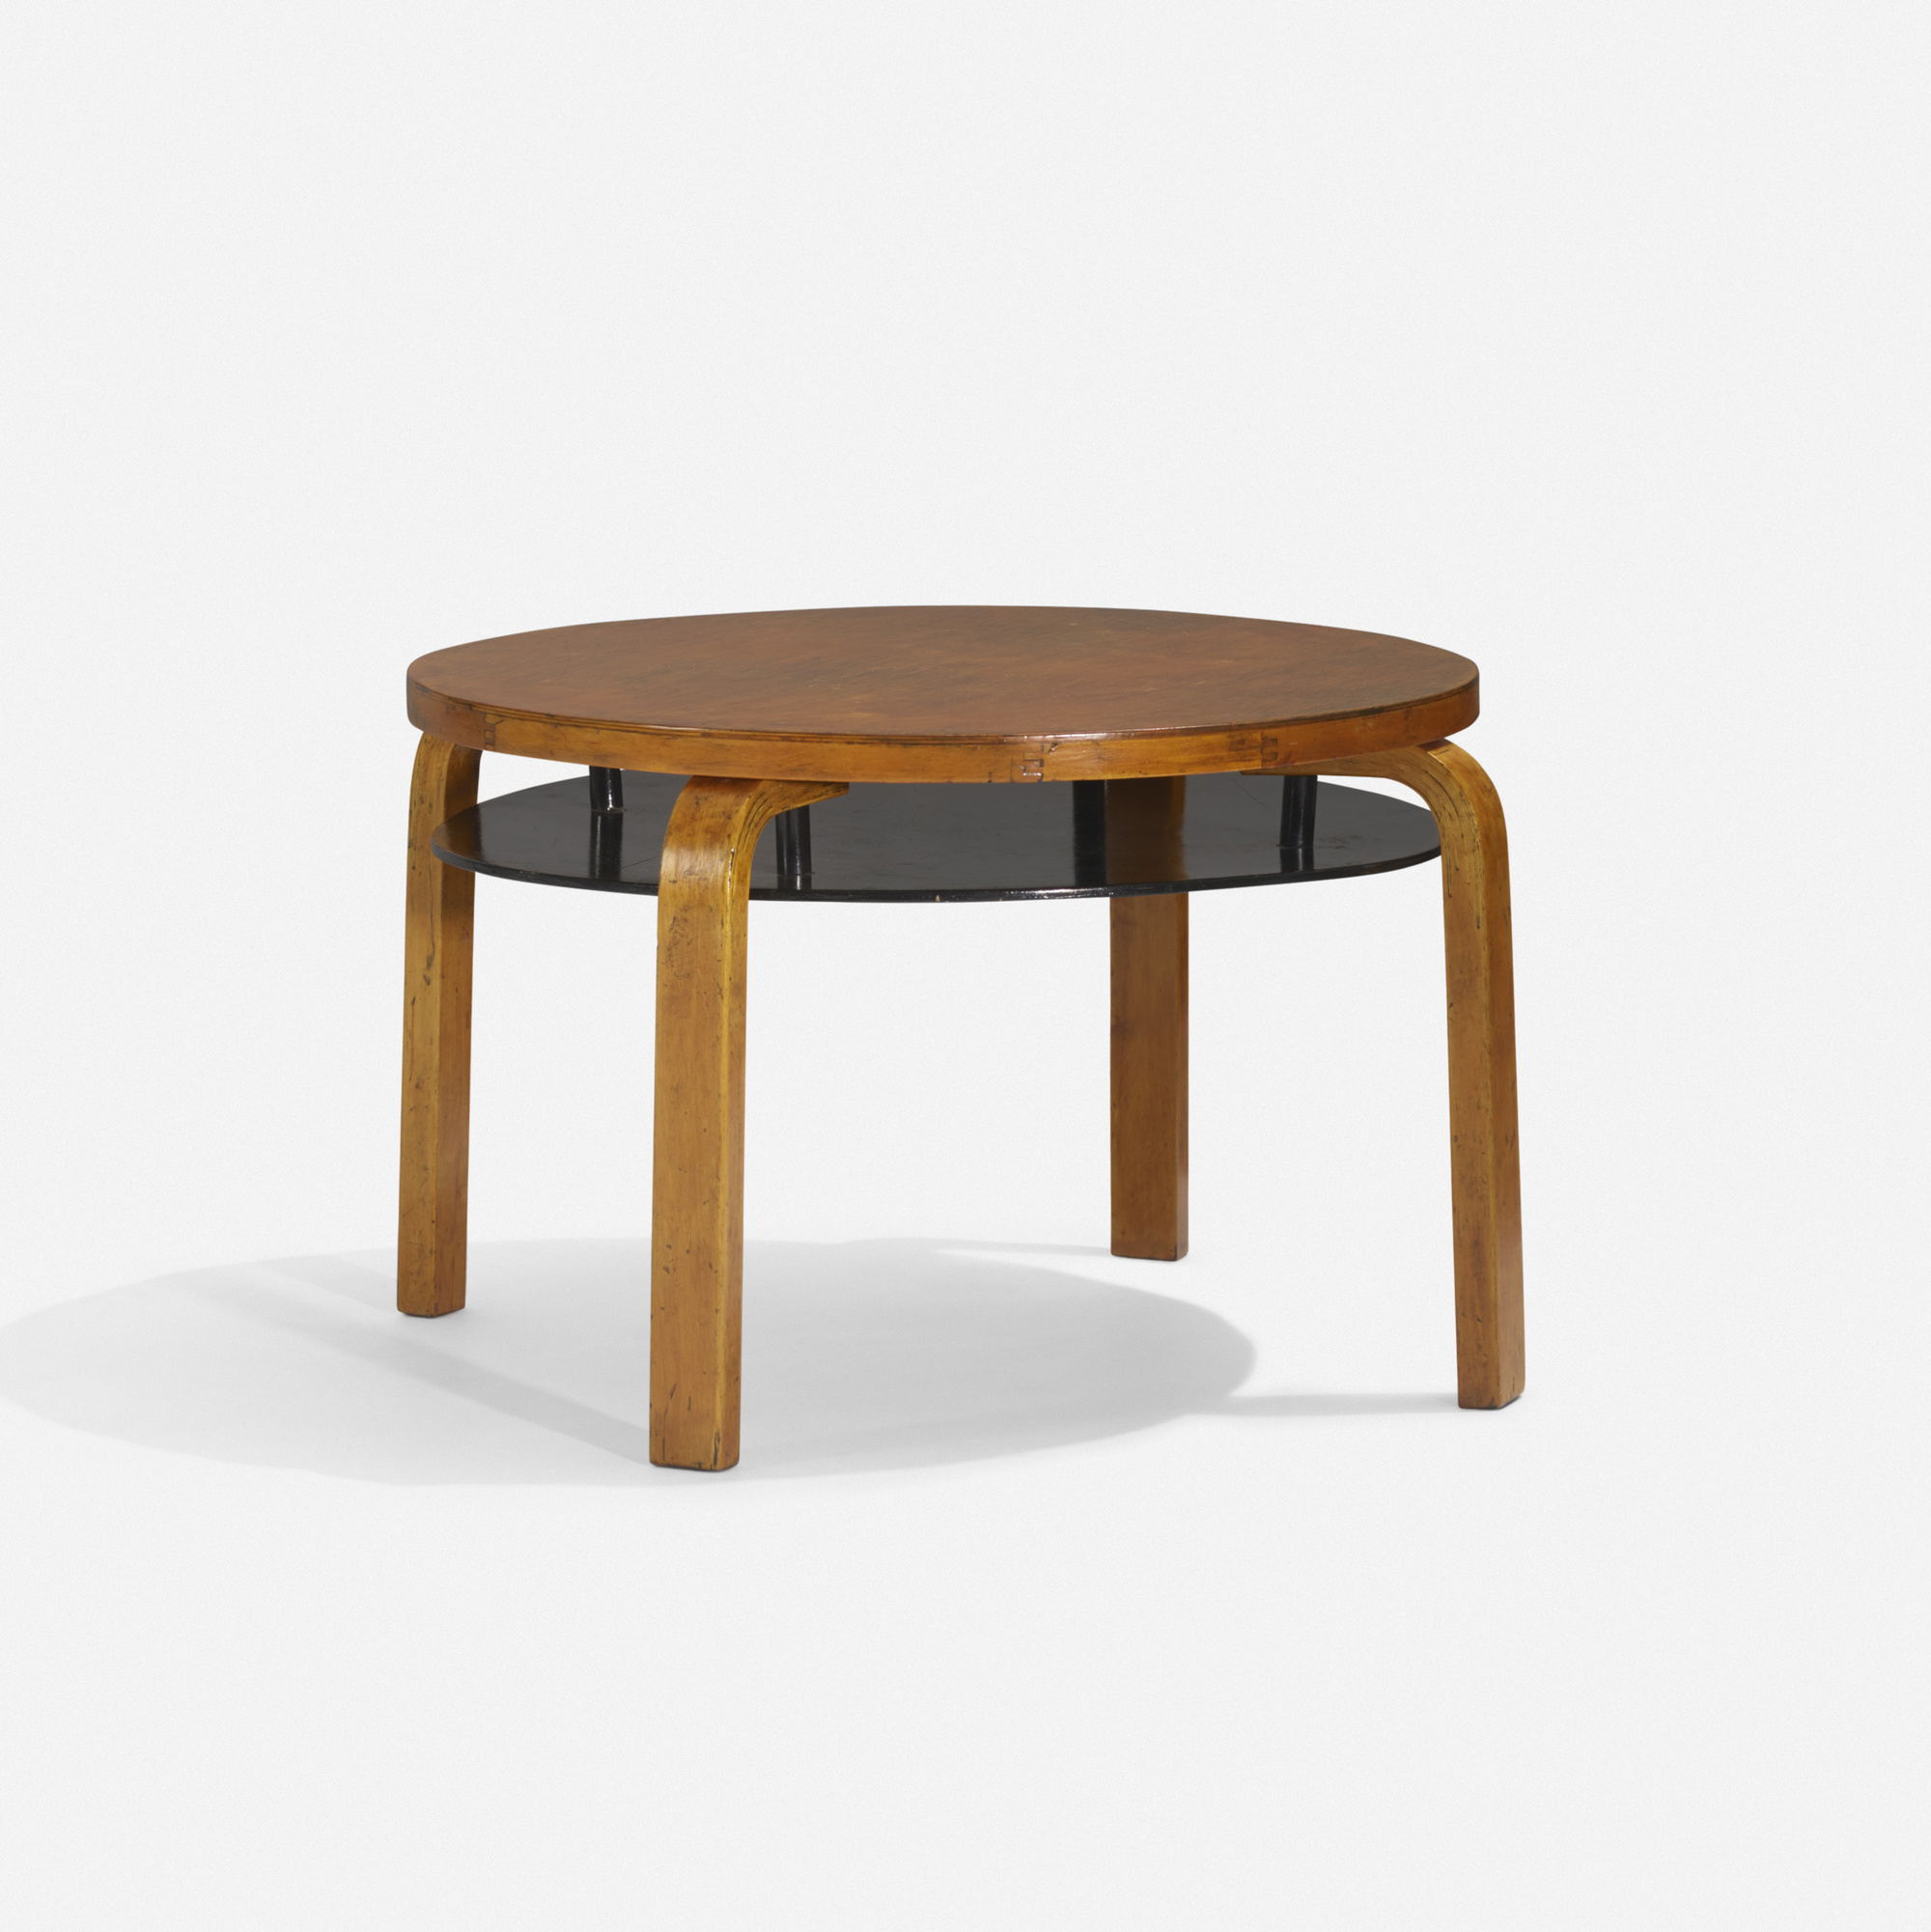 108: Alvar Aalto / Coffee Table, Model 70 (1 Of 2)